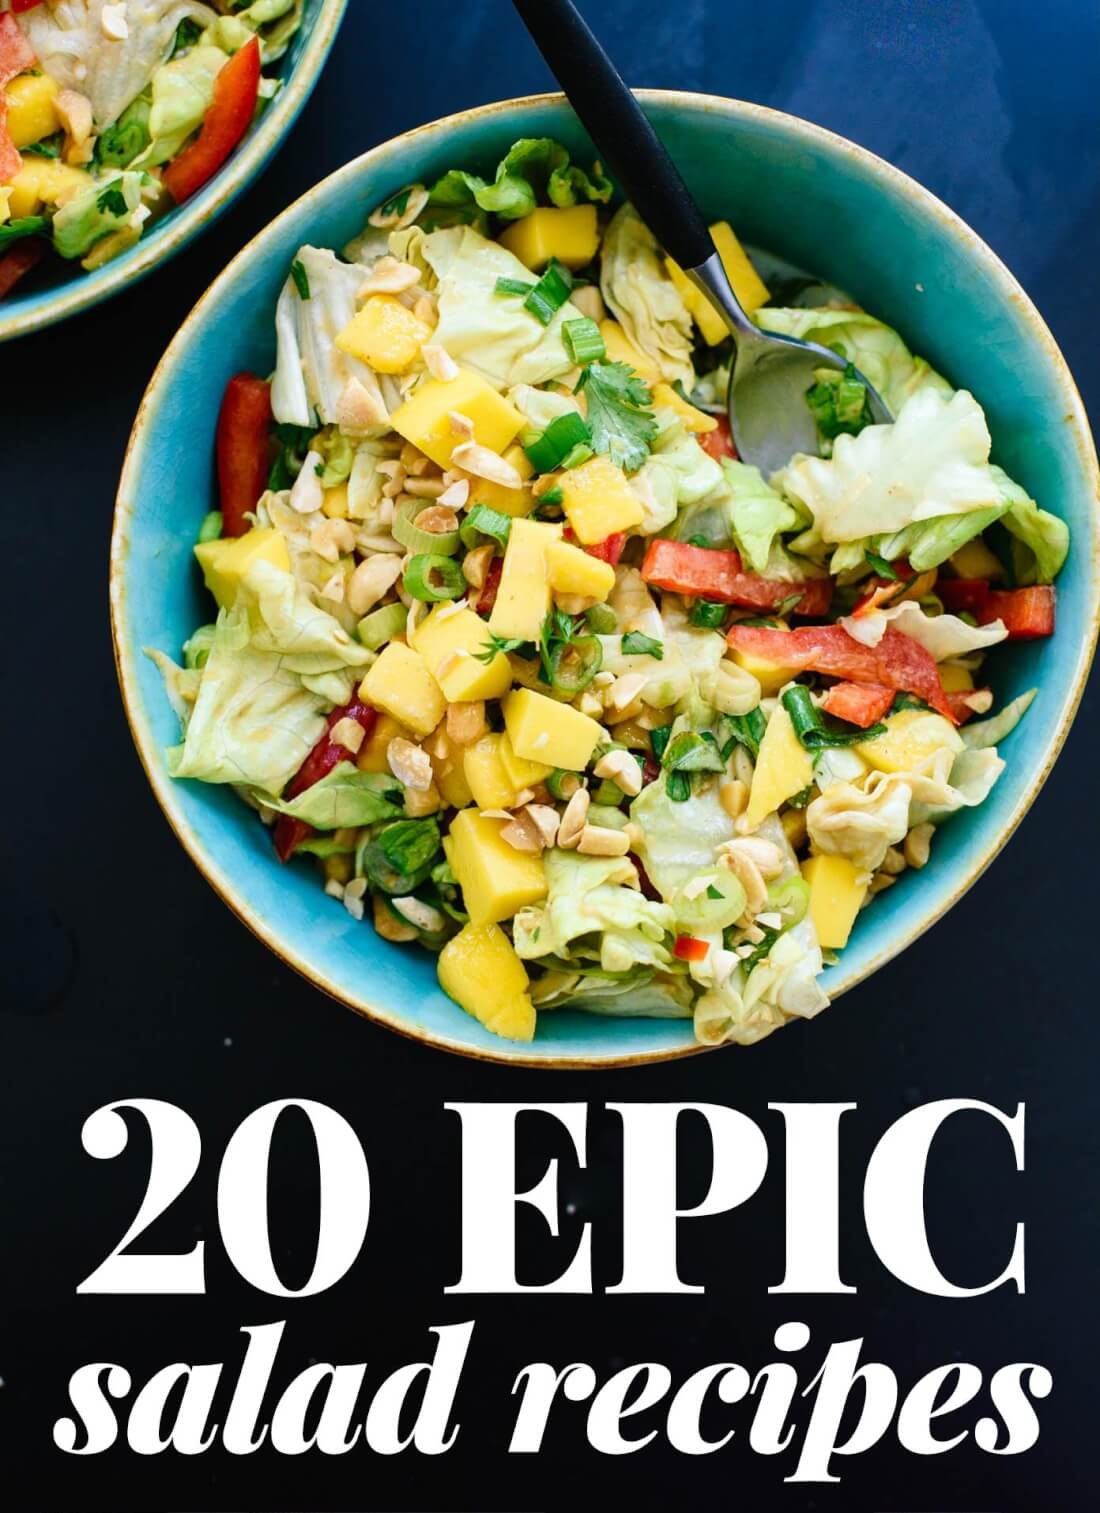 Gallant Keto Diet Kate Fast Food Salad Low Carb Fast Food Salad Craving Fresh Salads This Time Find Delicious Healthy Saladrecipes At Epic Salad Recipes Cookie nice food Best Fast Food Salad